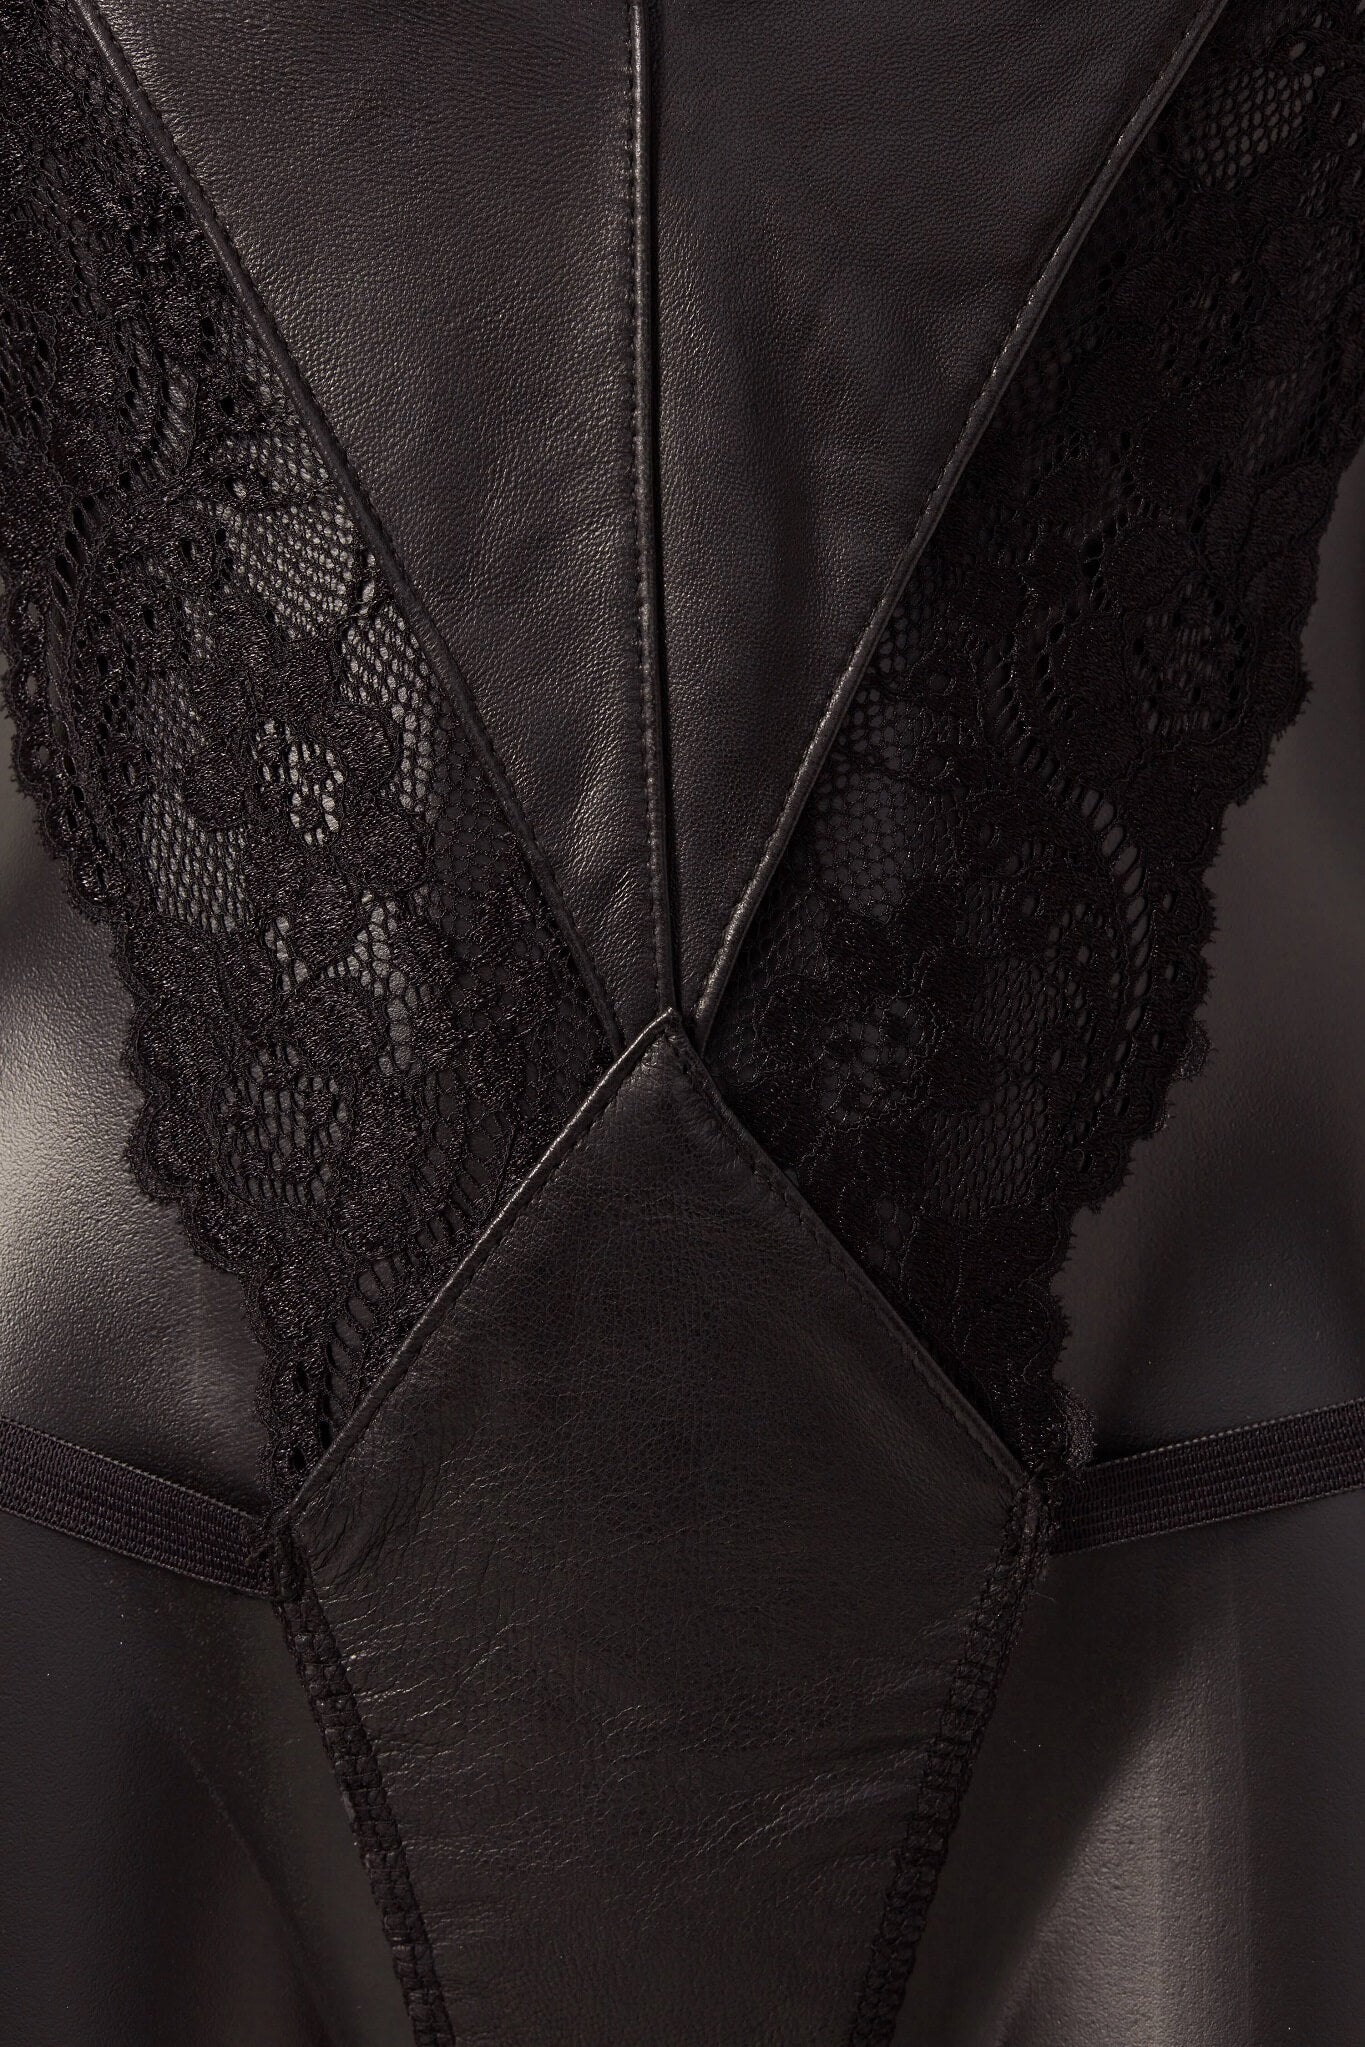 House of SXN VXN Leather and Lace Teddy